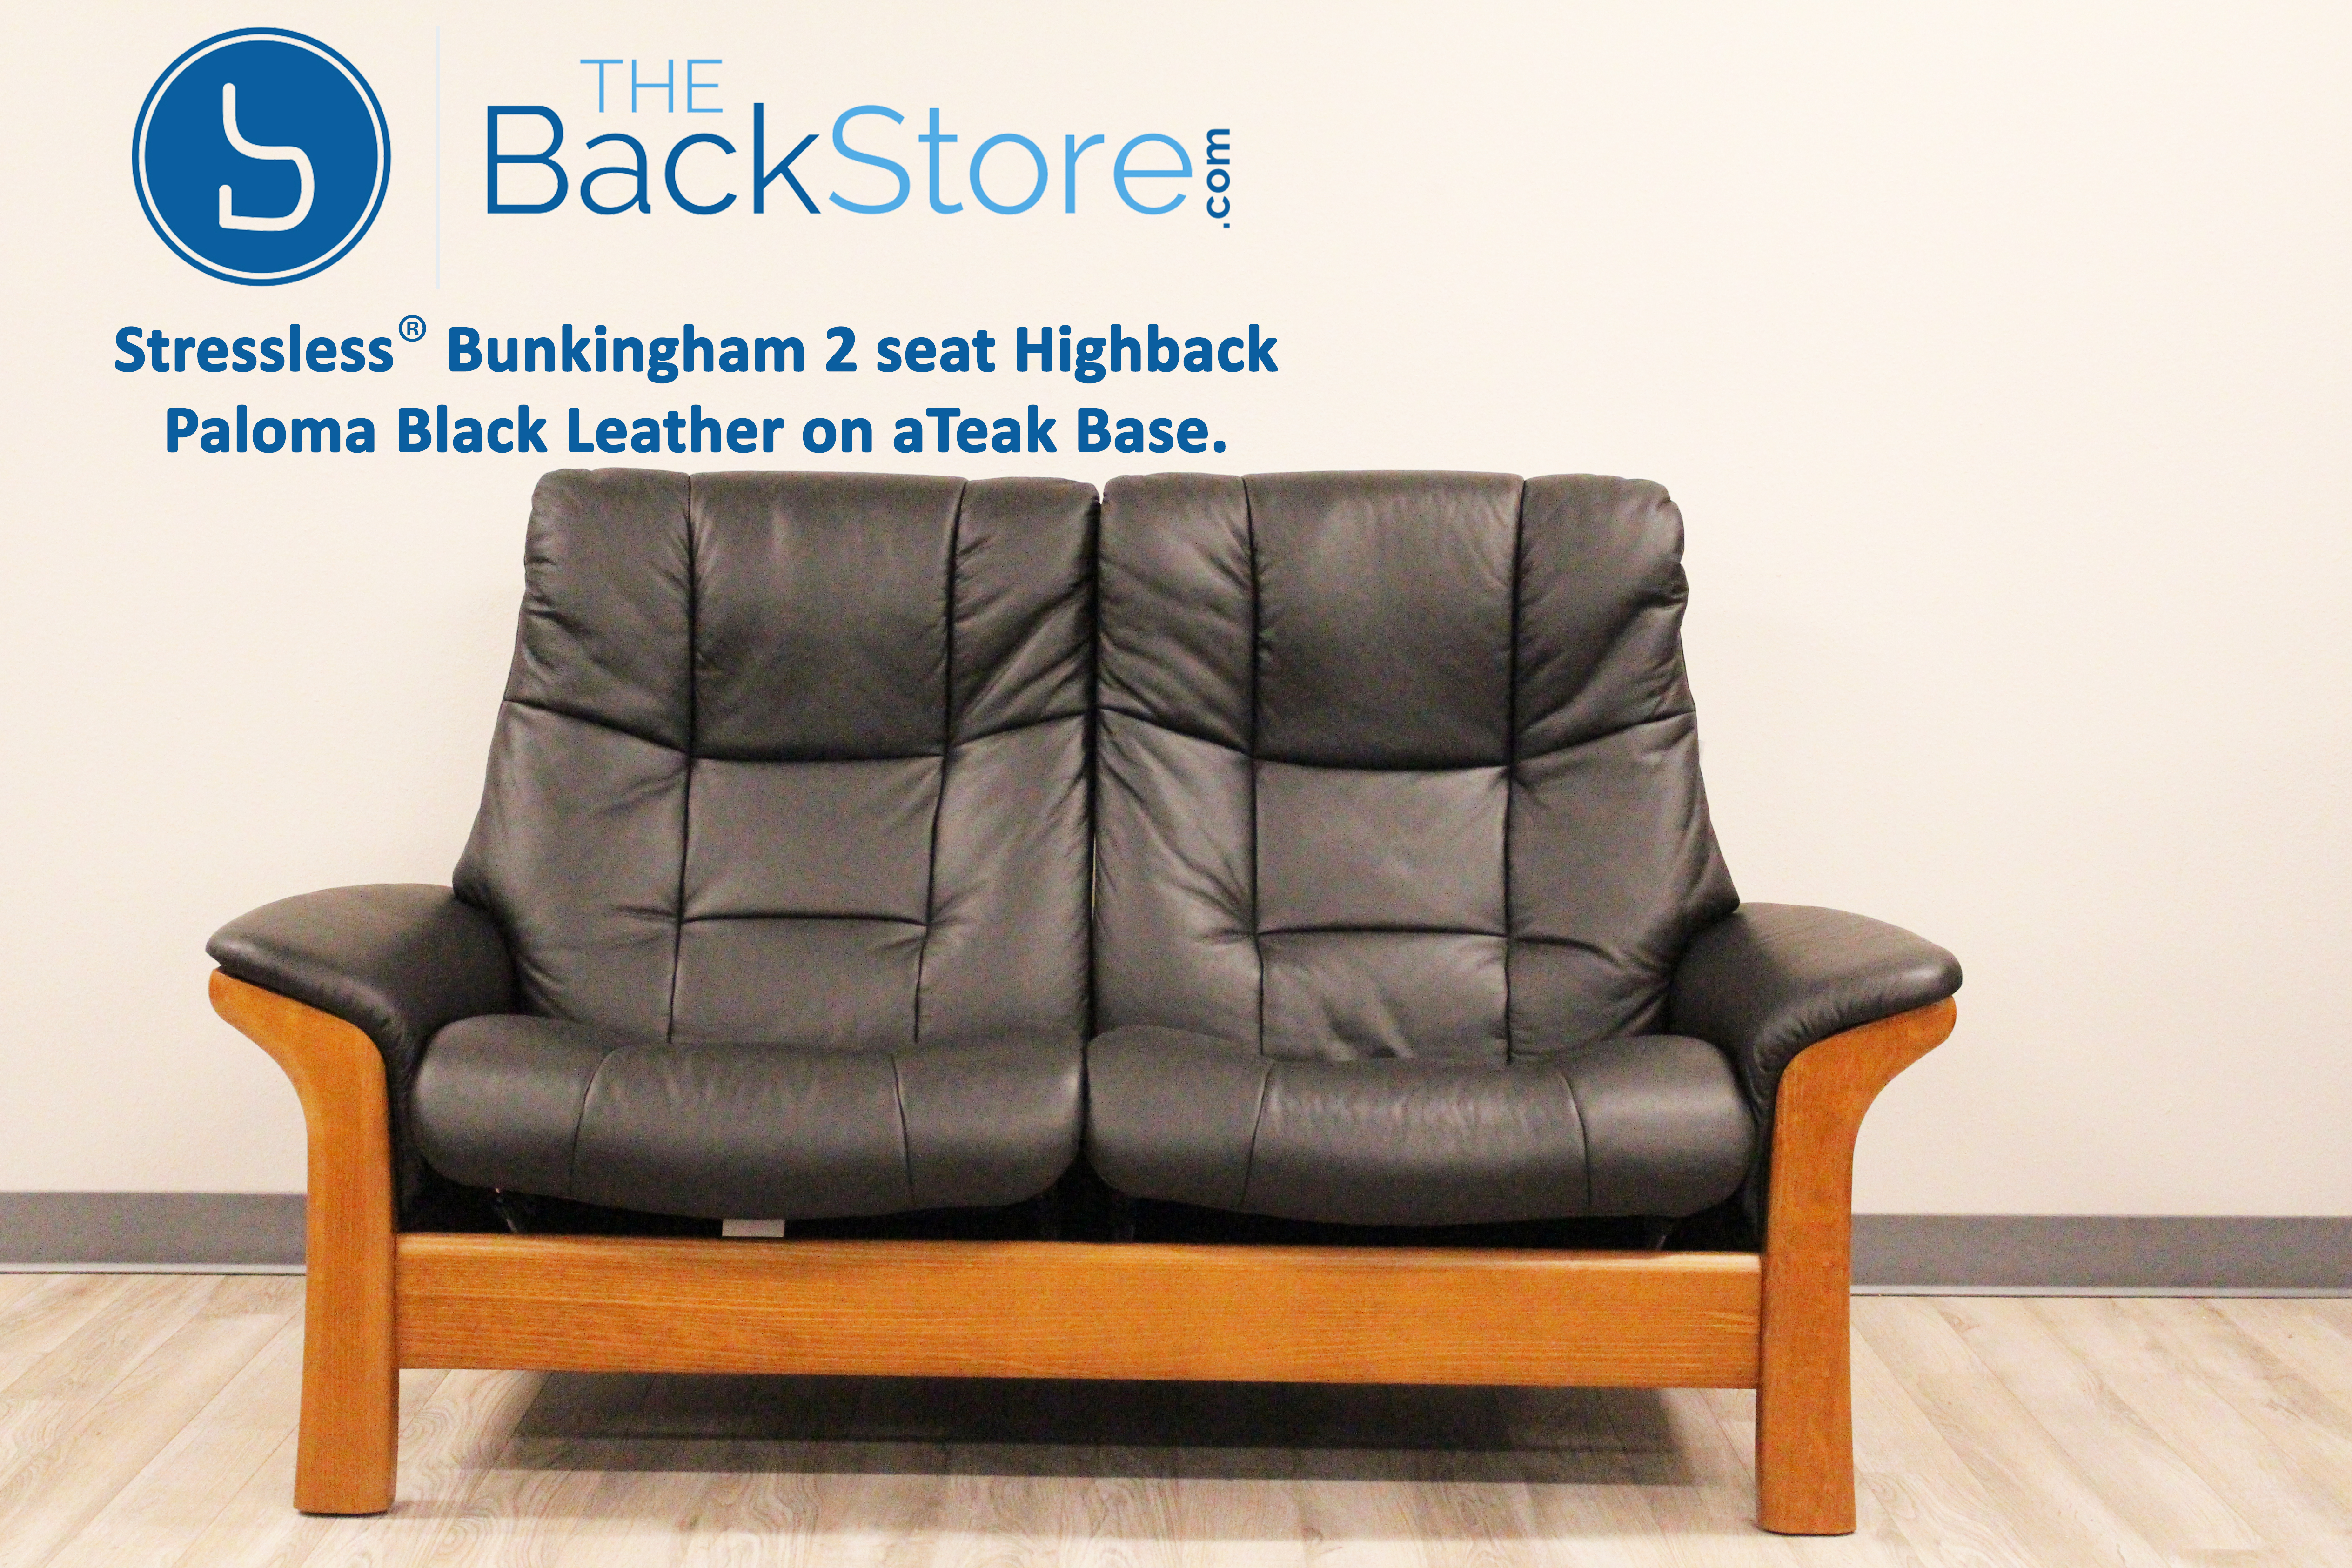 Stressless Buckingham 2 Seat Loveseat High Back Sofa Paloma Black